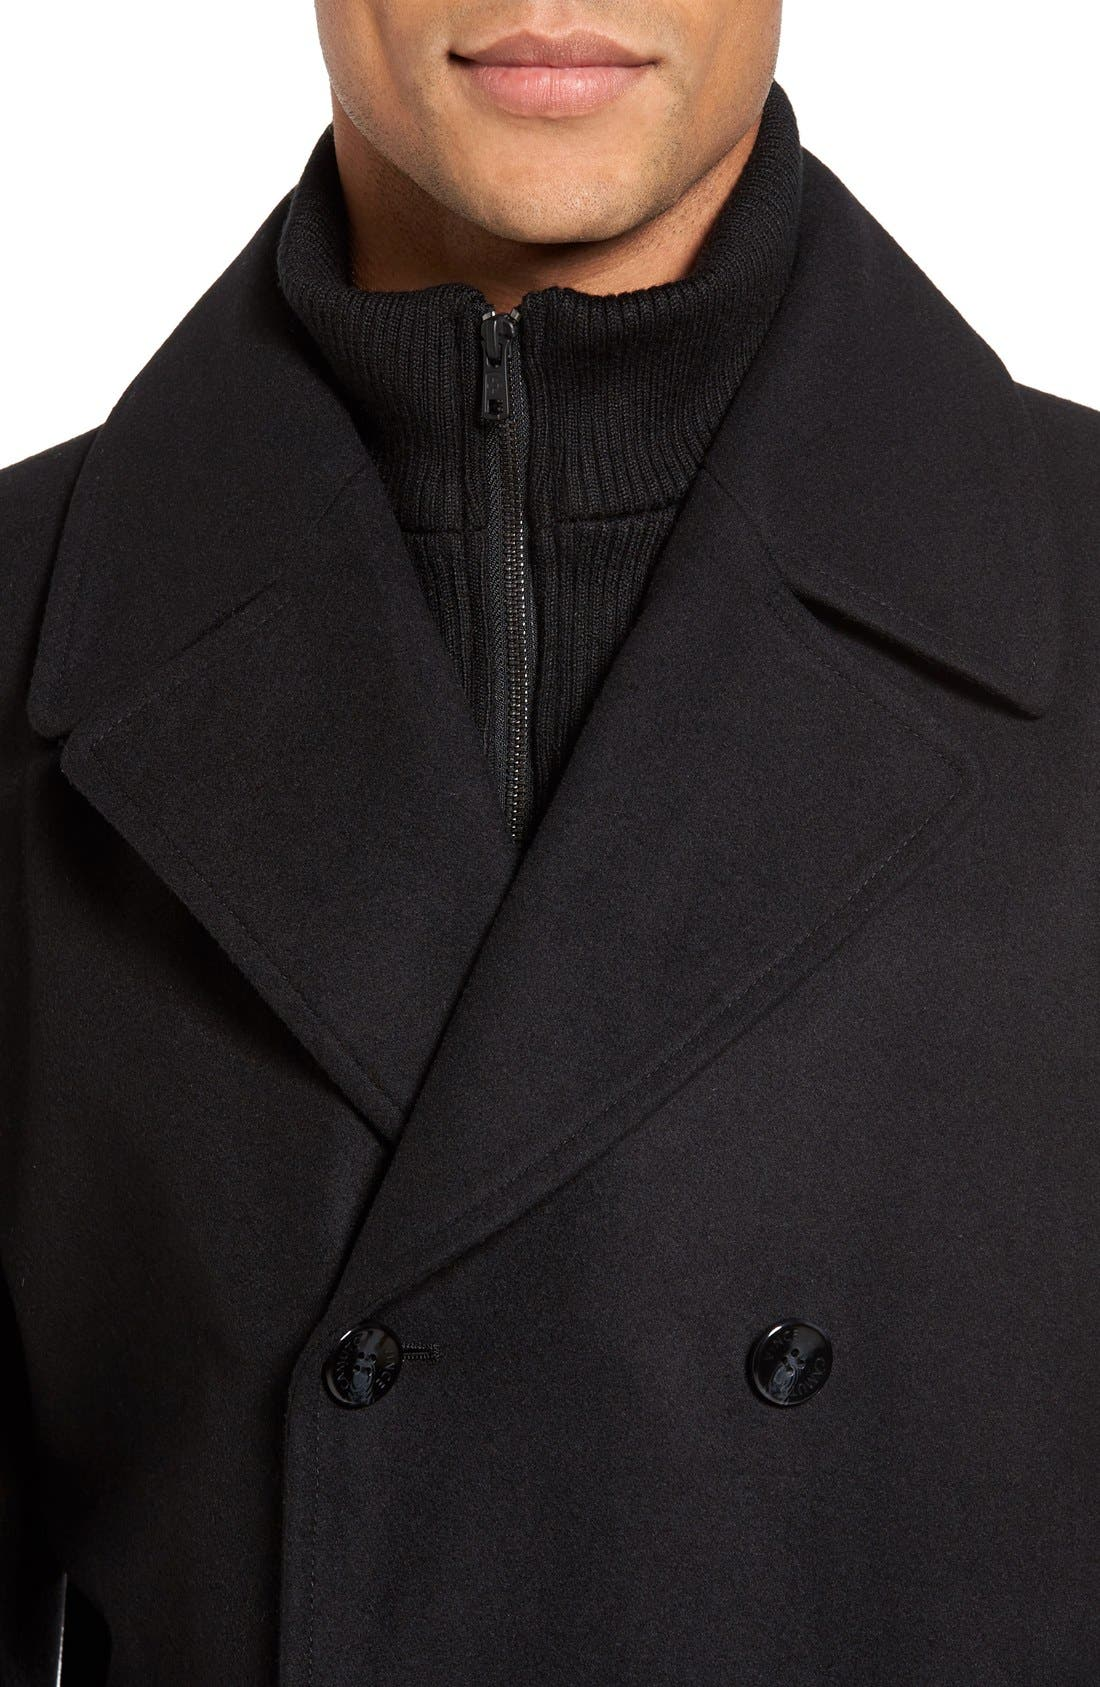 Dock Peacoat,                             Alternate thumbnail 4, color,                             Black